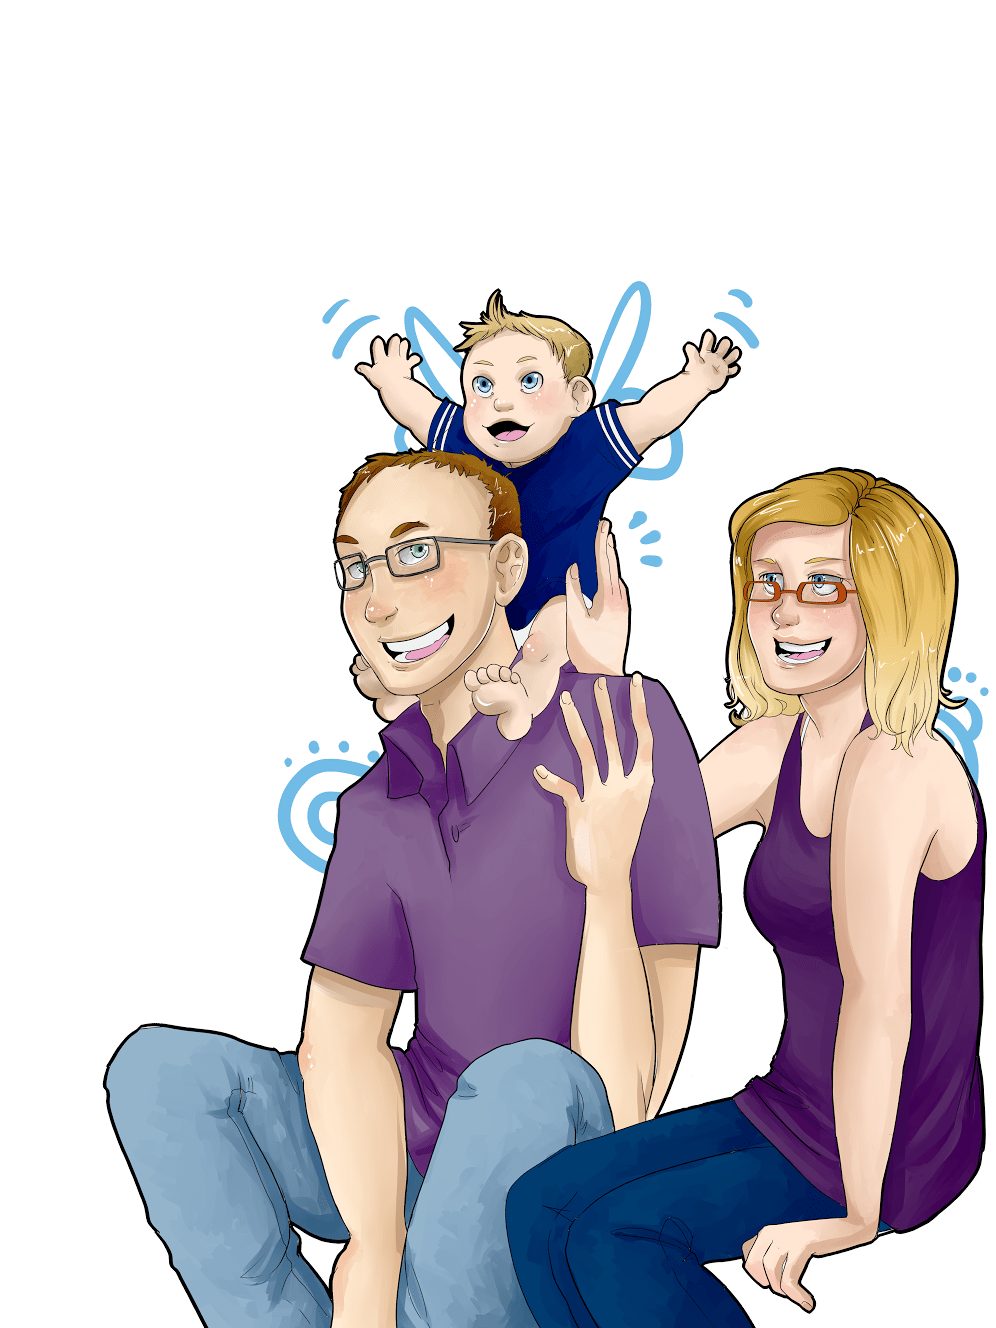 Portrait of the Klawuhn family by AruRmz via ArtCorgi - Blue Detail